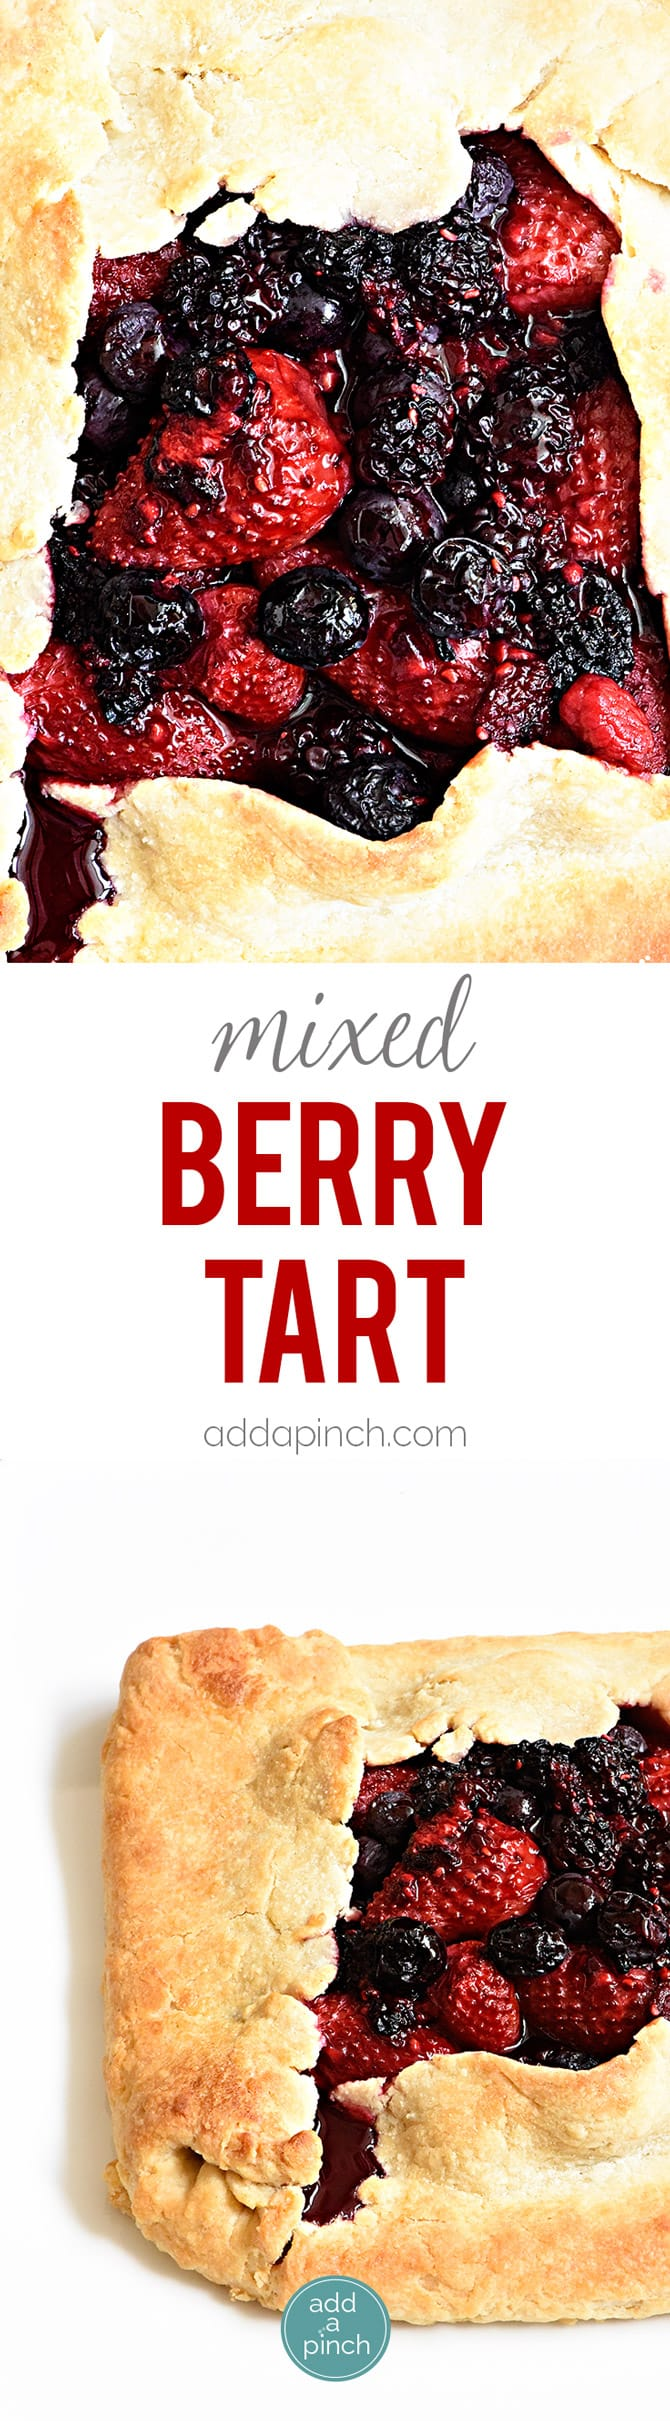 Rustic Mixed Berry Tart Recipe - This Rustic Mixed Berry Tart recipe makes a delicious dessert recipe perfect for a simple weeknight supper! Made of strawberries, blueberries and blackberries and sweetened with honey. So easy! // addapinch.com